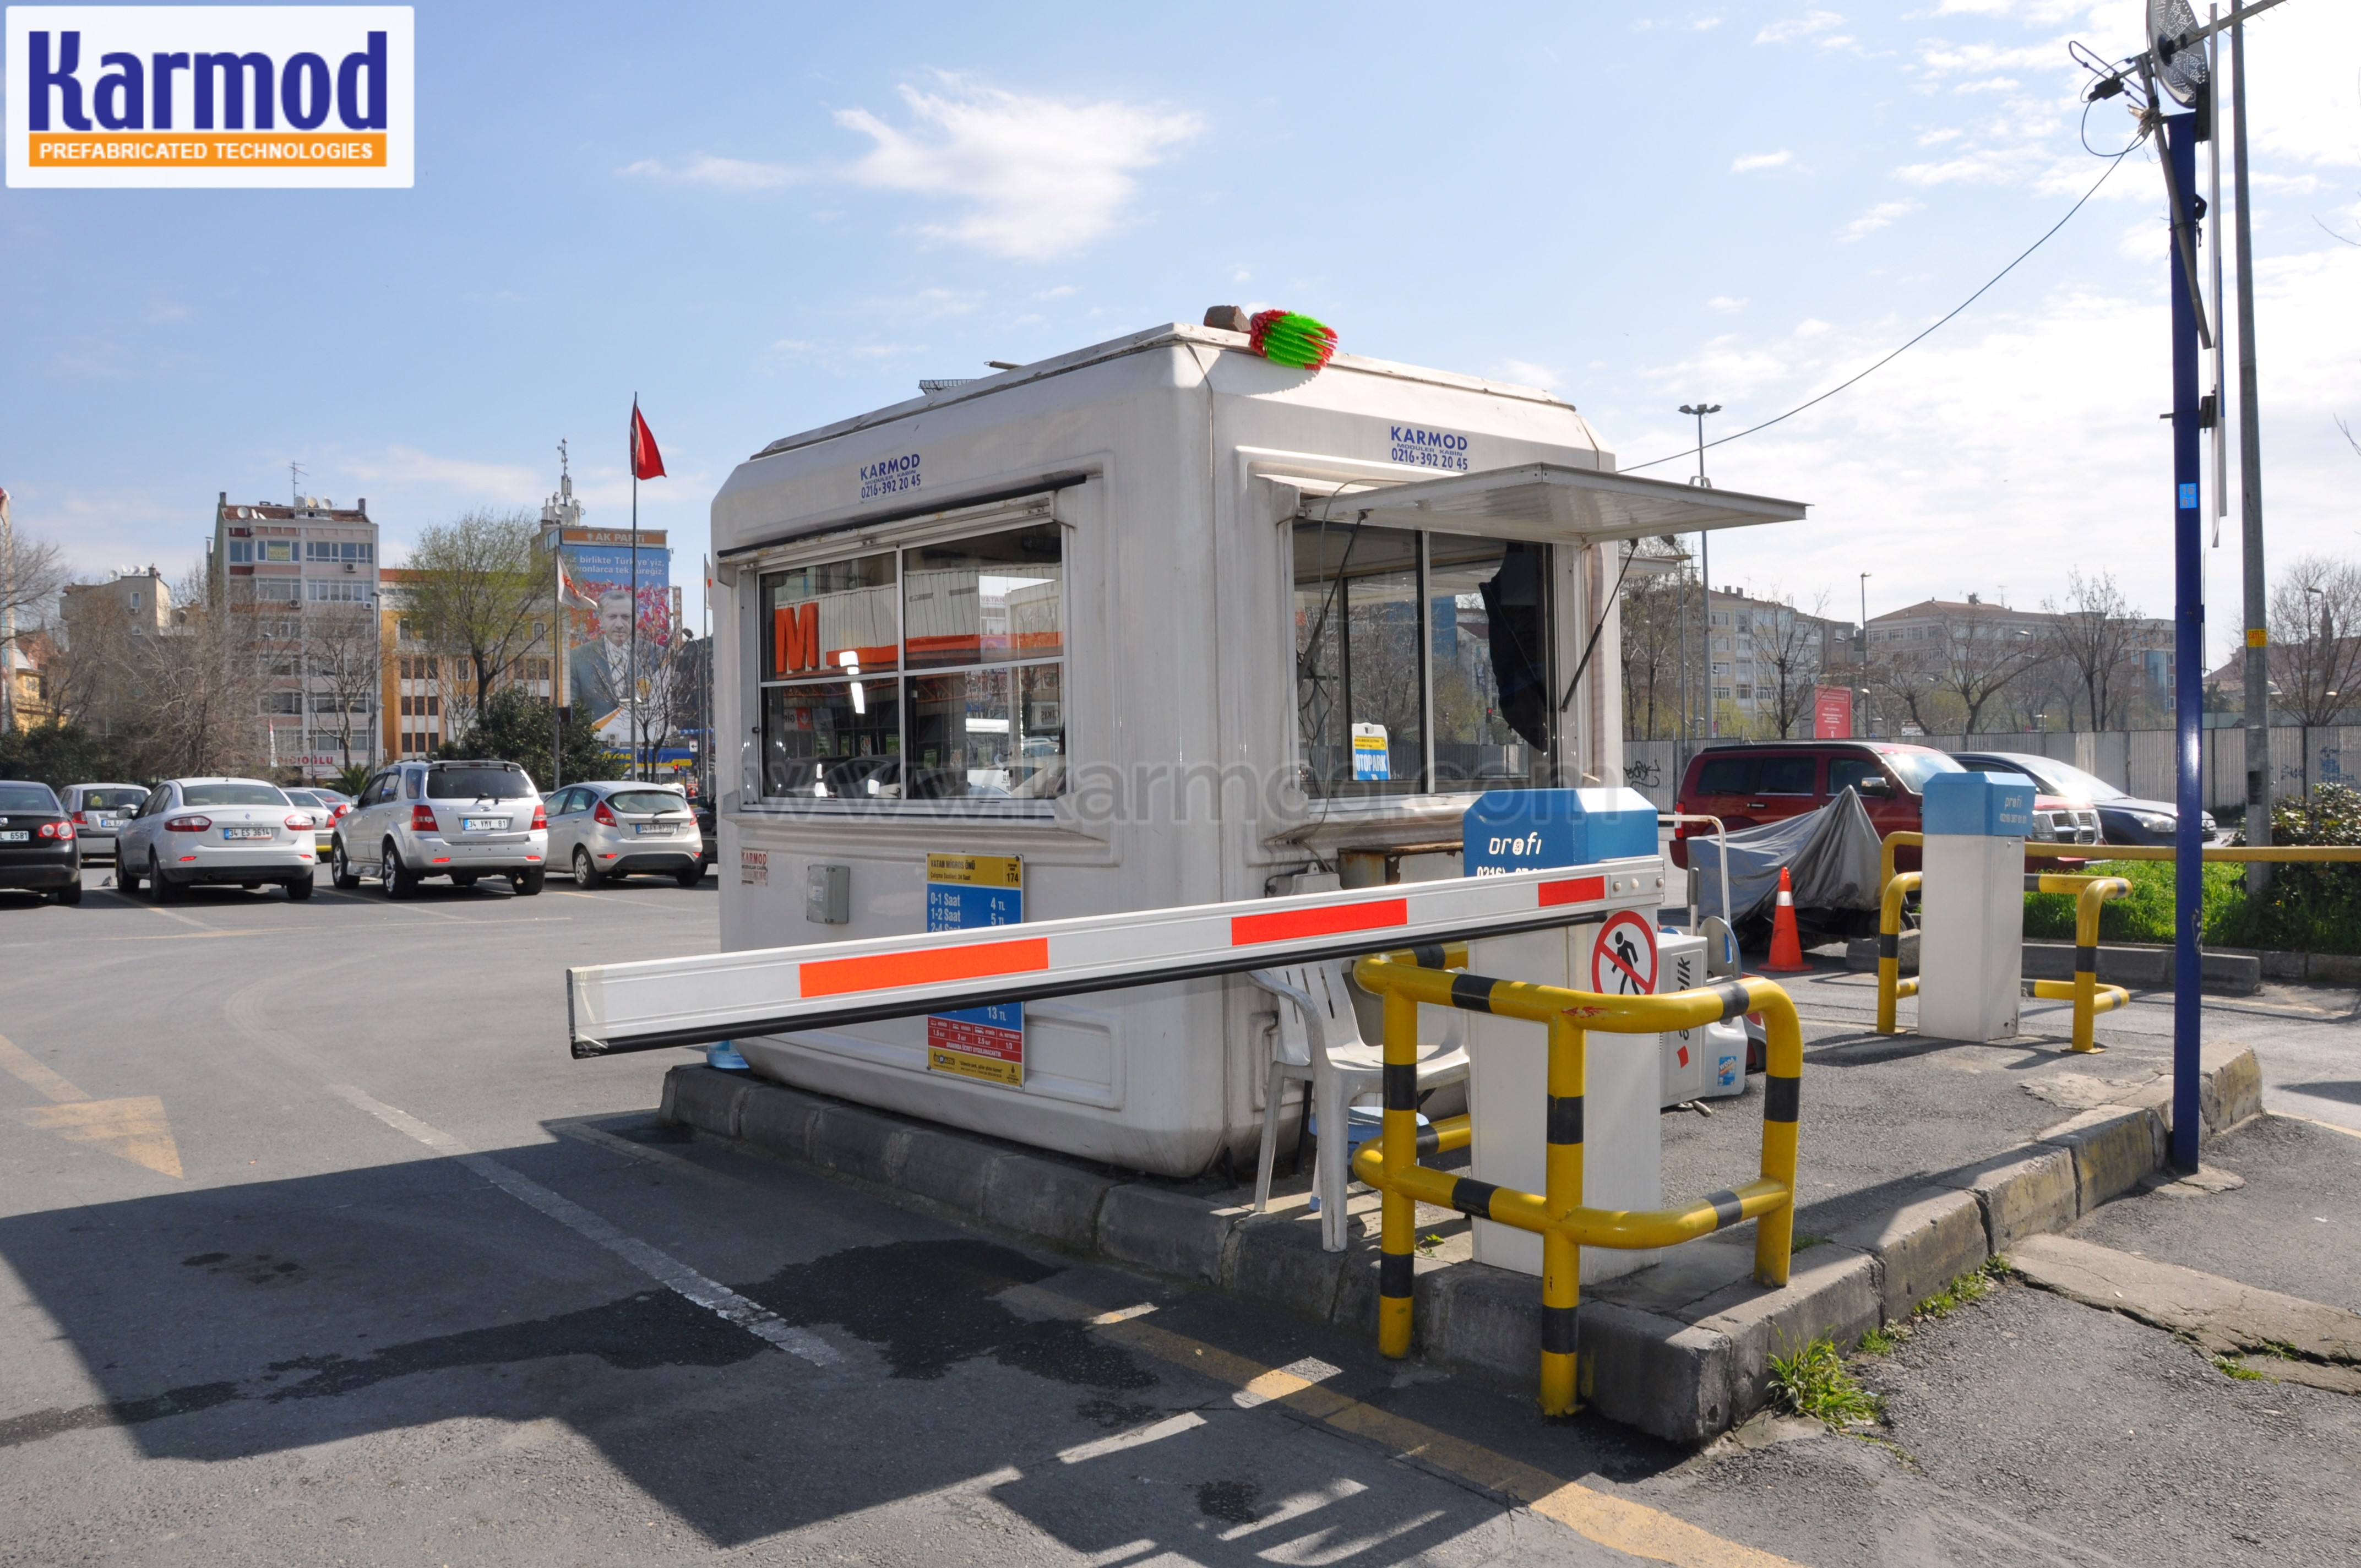 parking cashier booth